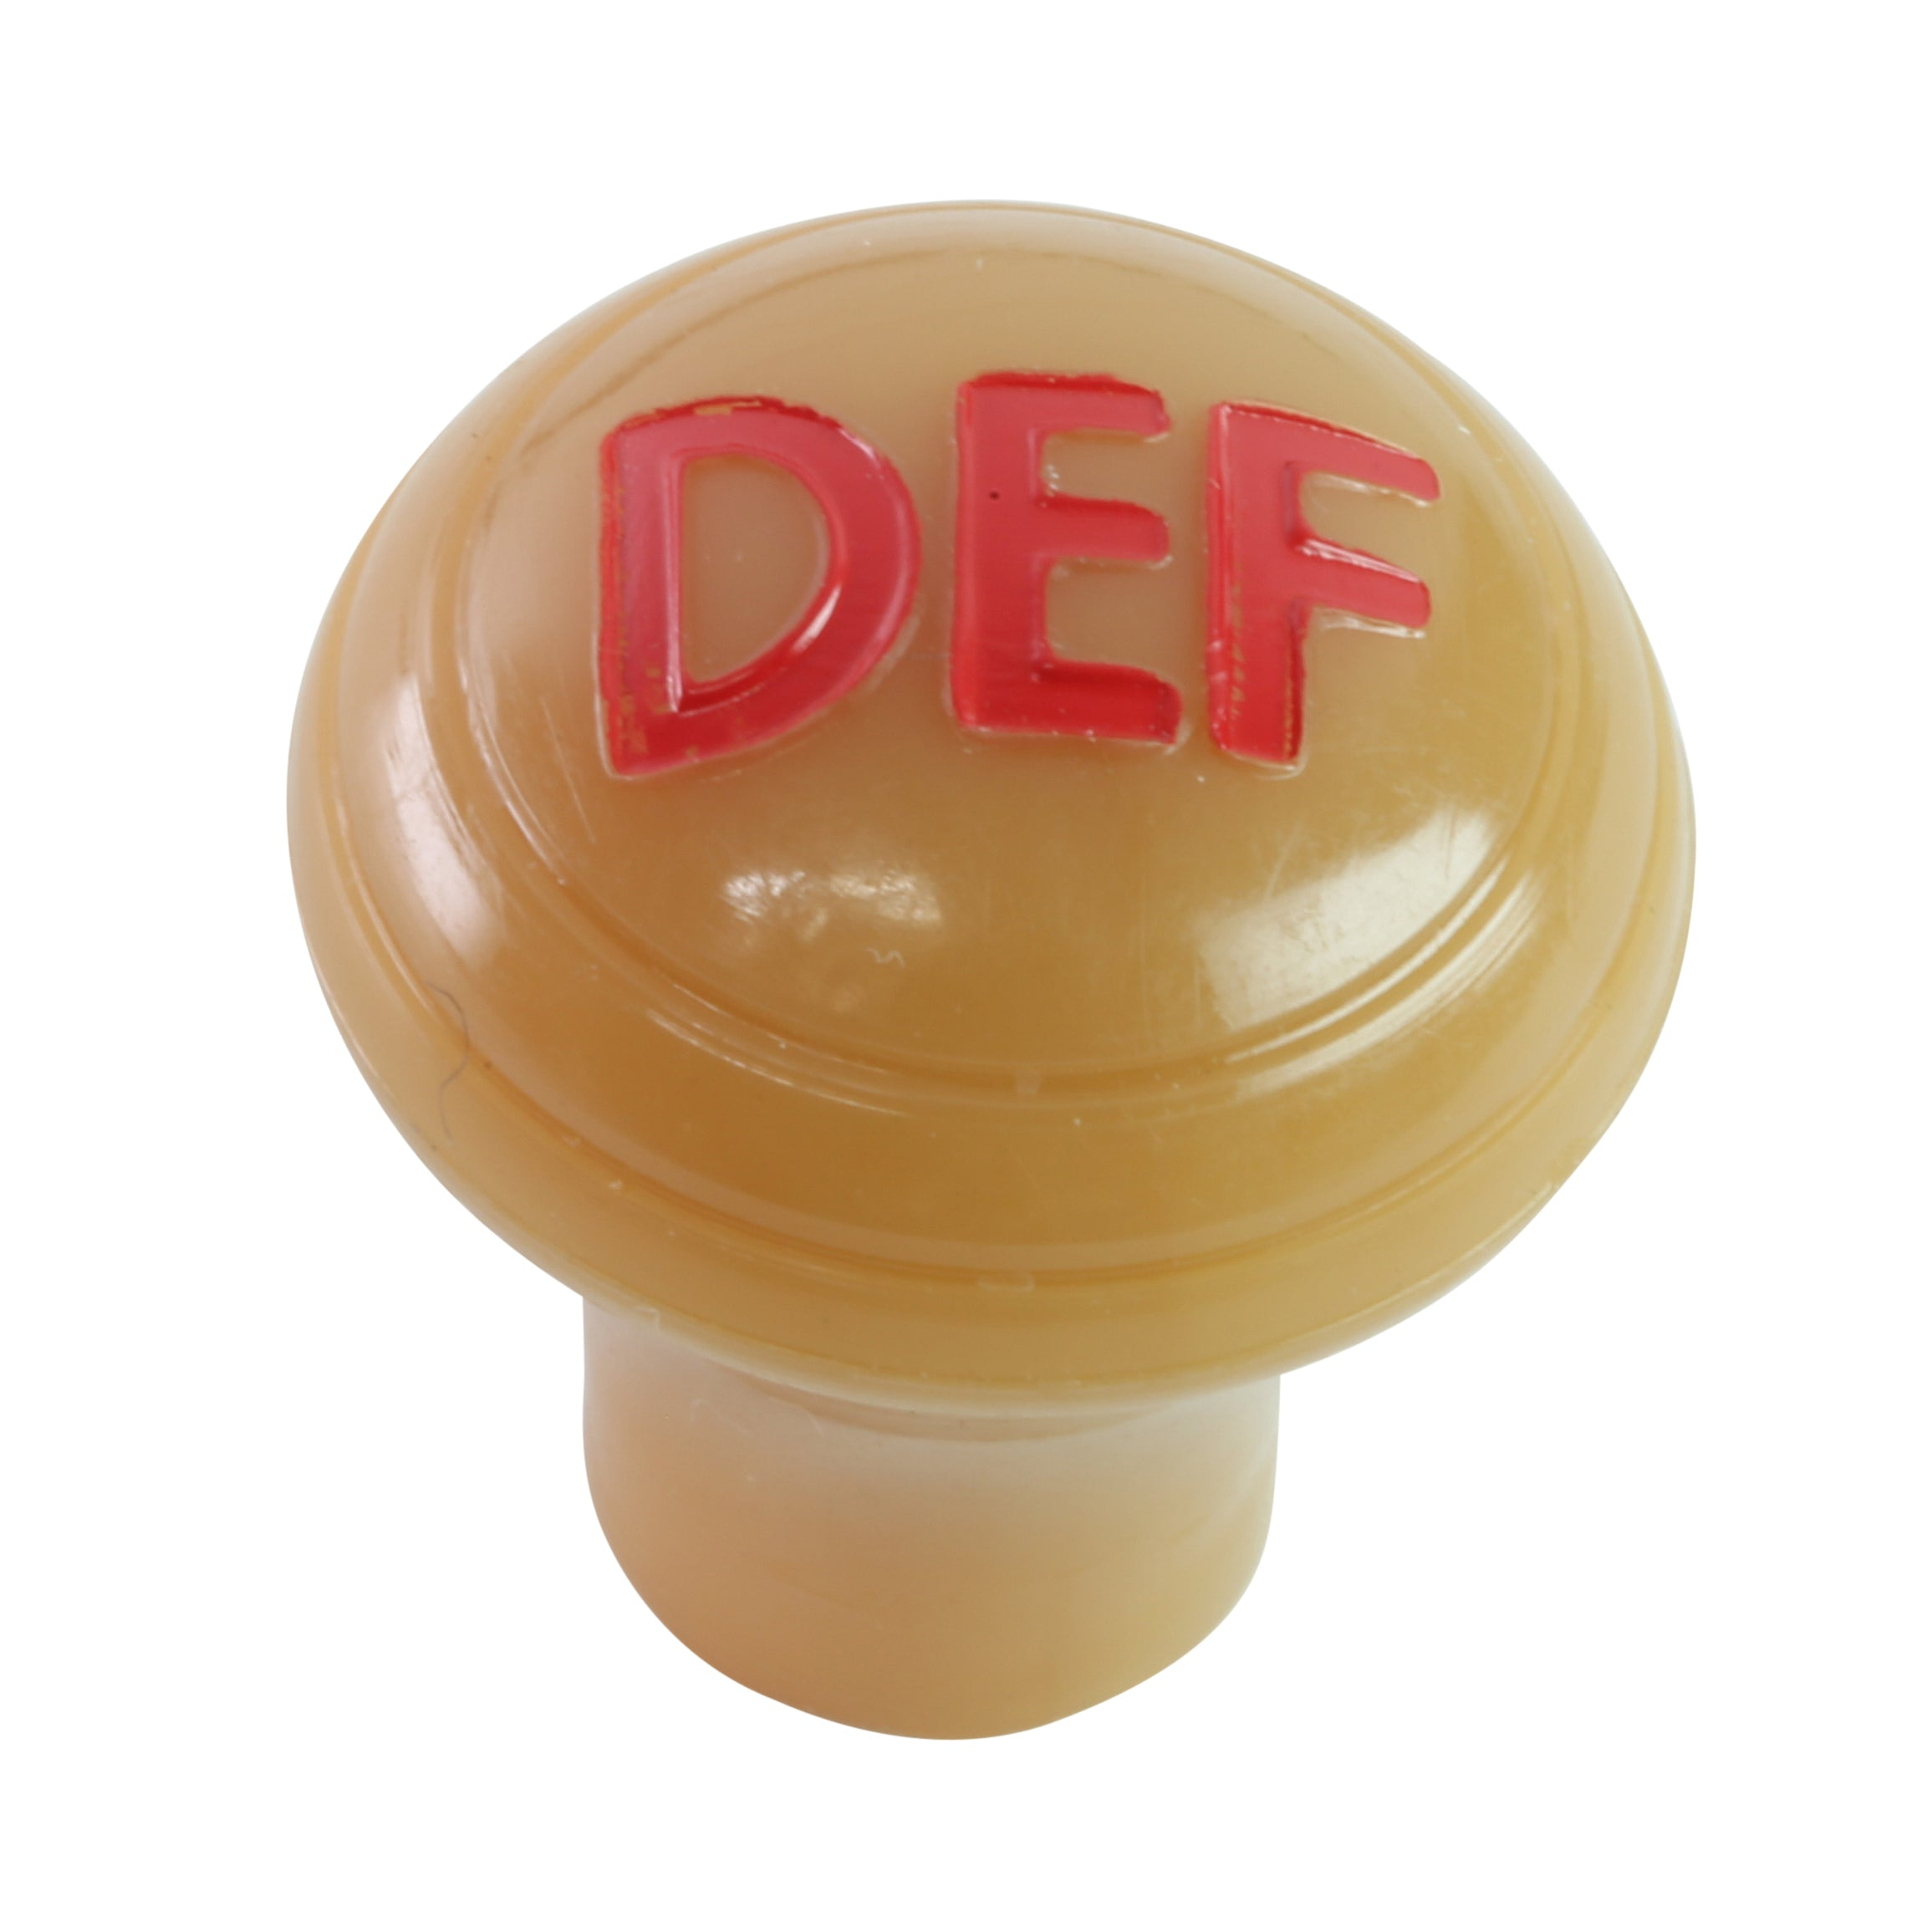 Hot Water Heater Defroster Knob (Butterscotch) • 1942 Ford